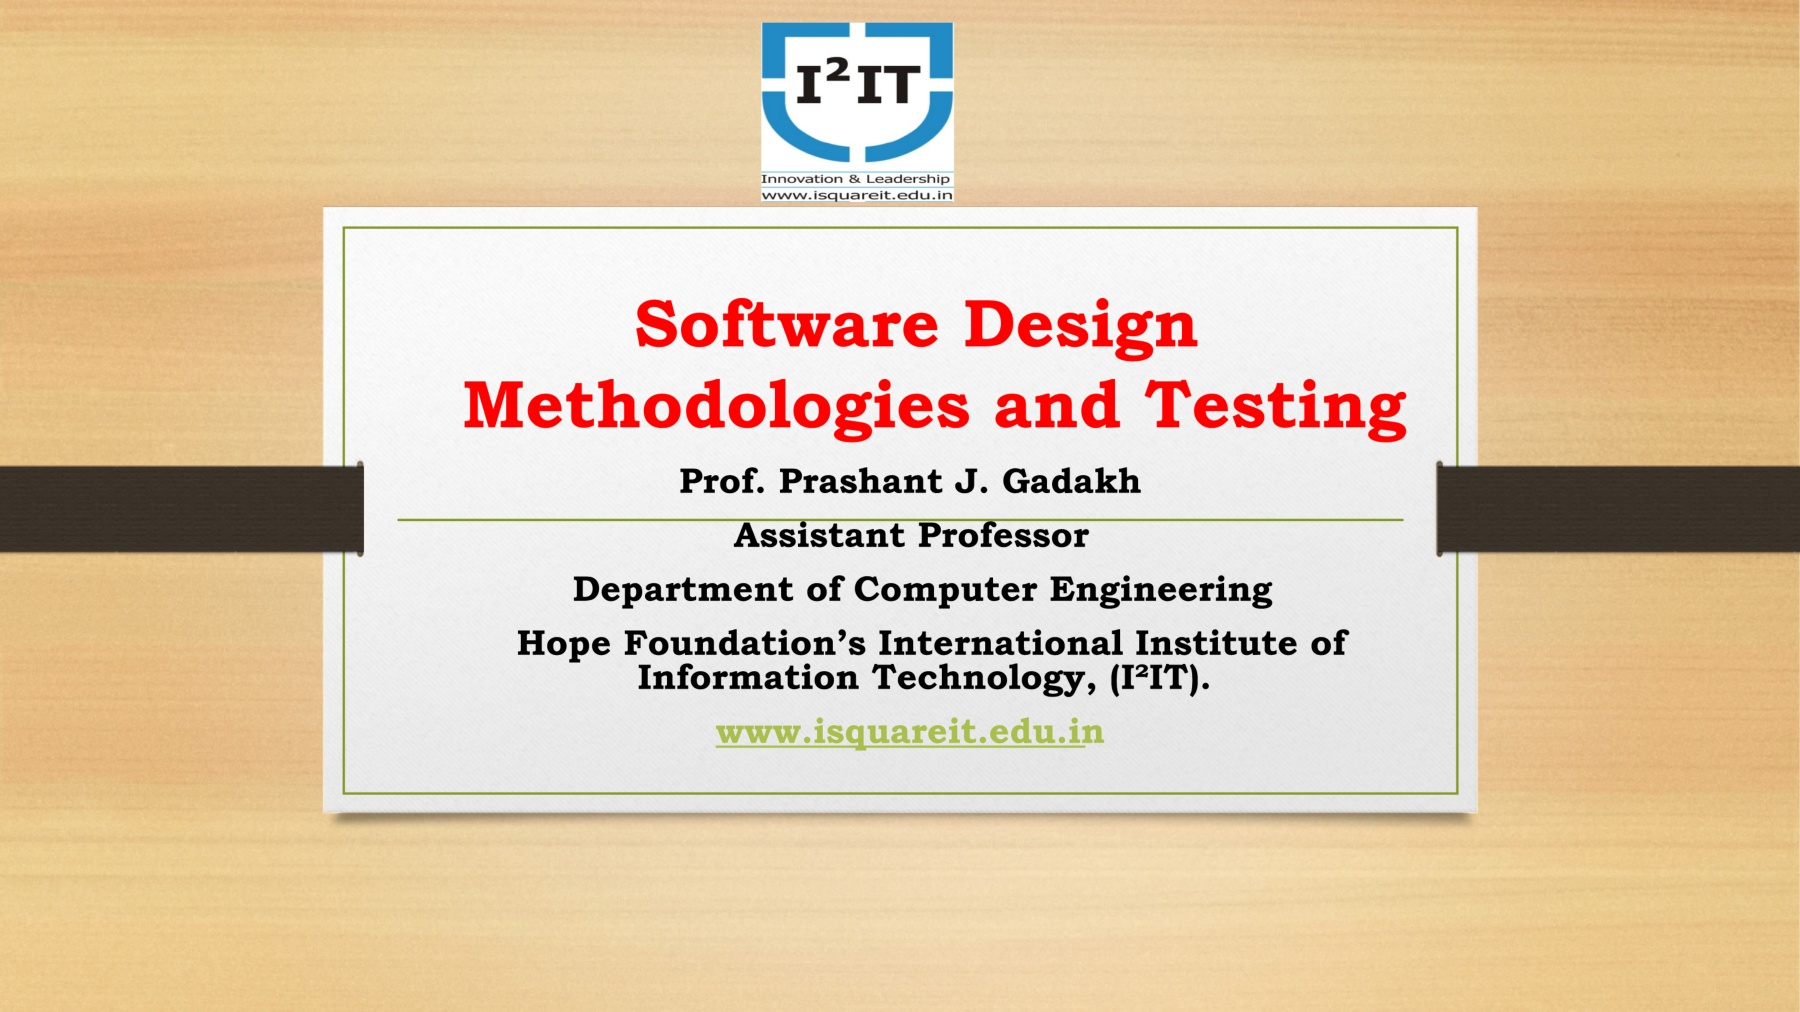 Software Design Methodologies And Testing Department Of Computer Engineering Pages 1 31 Text Version Anyflip